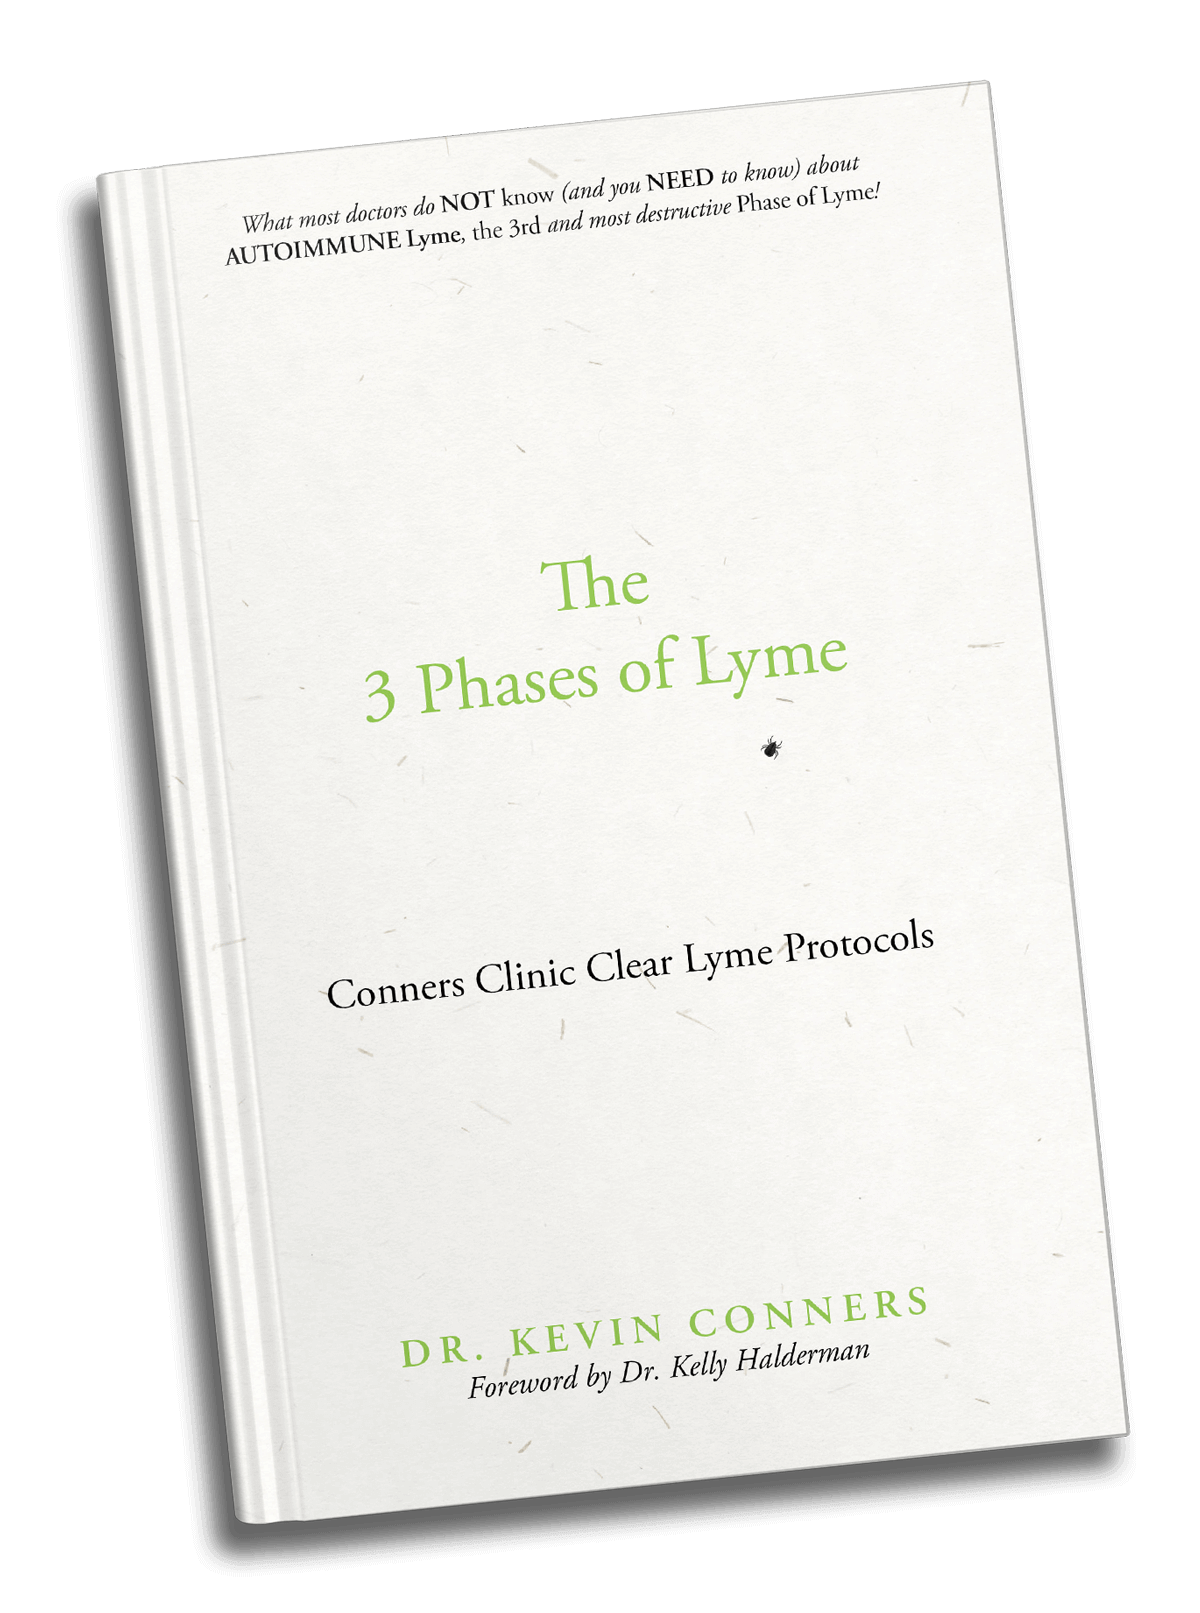 Free Book Download: The 3 Phases of Lyme 2